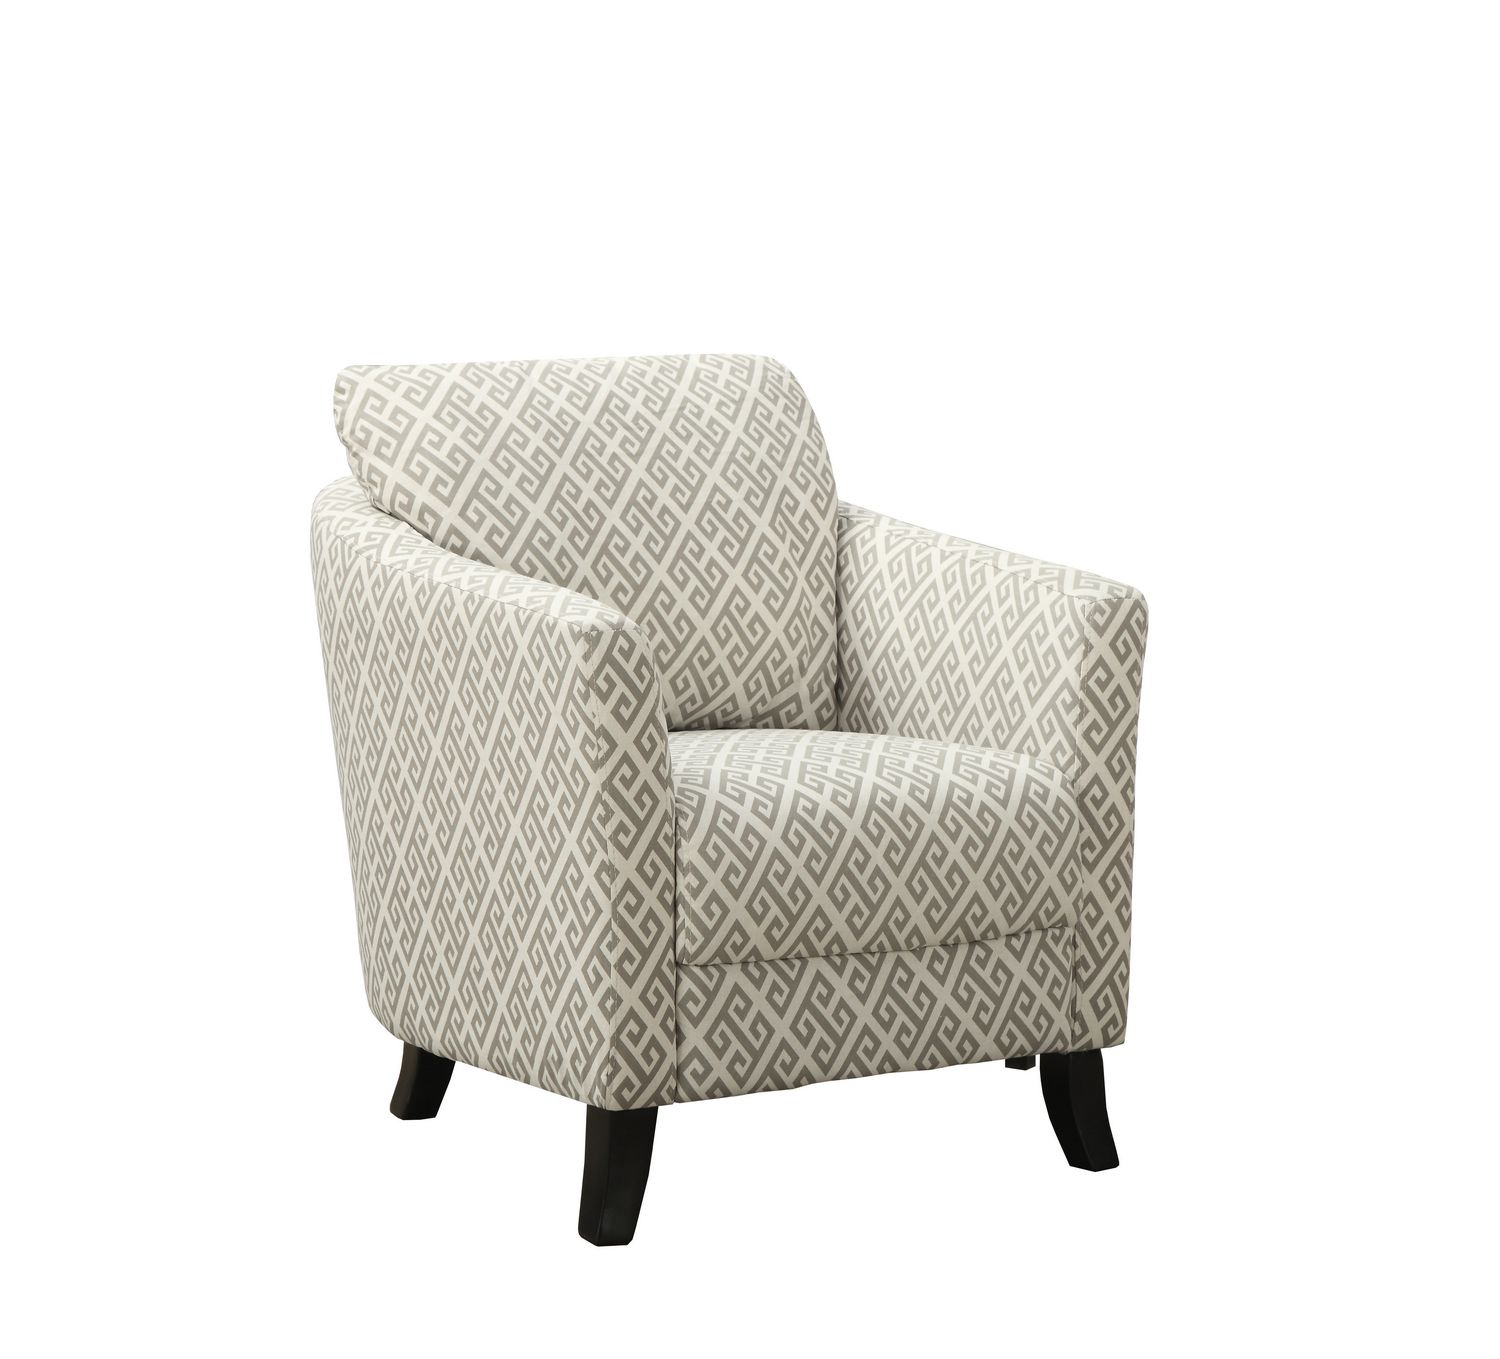 Grey Patterned Accent Chair Magnificent Inspiration Design